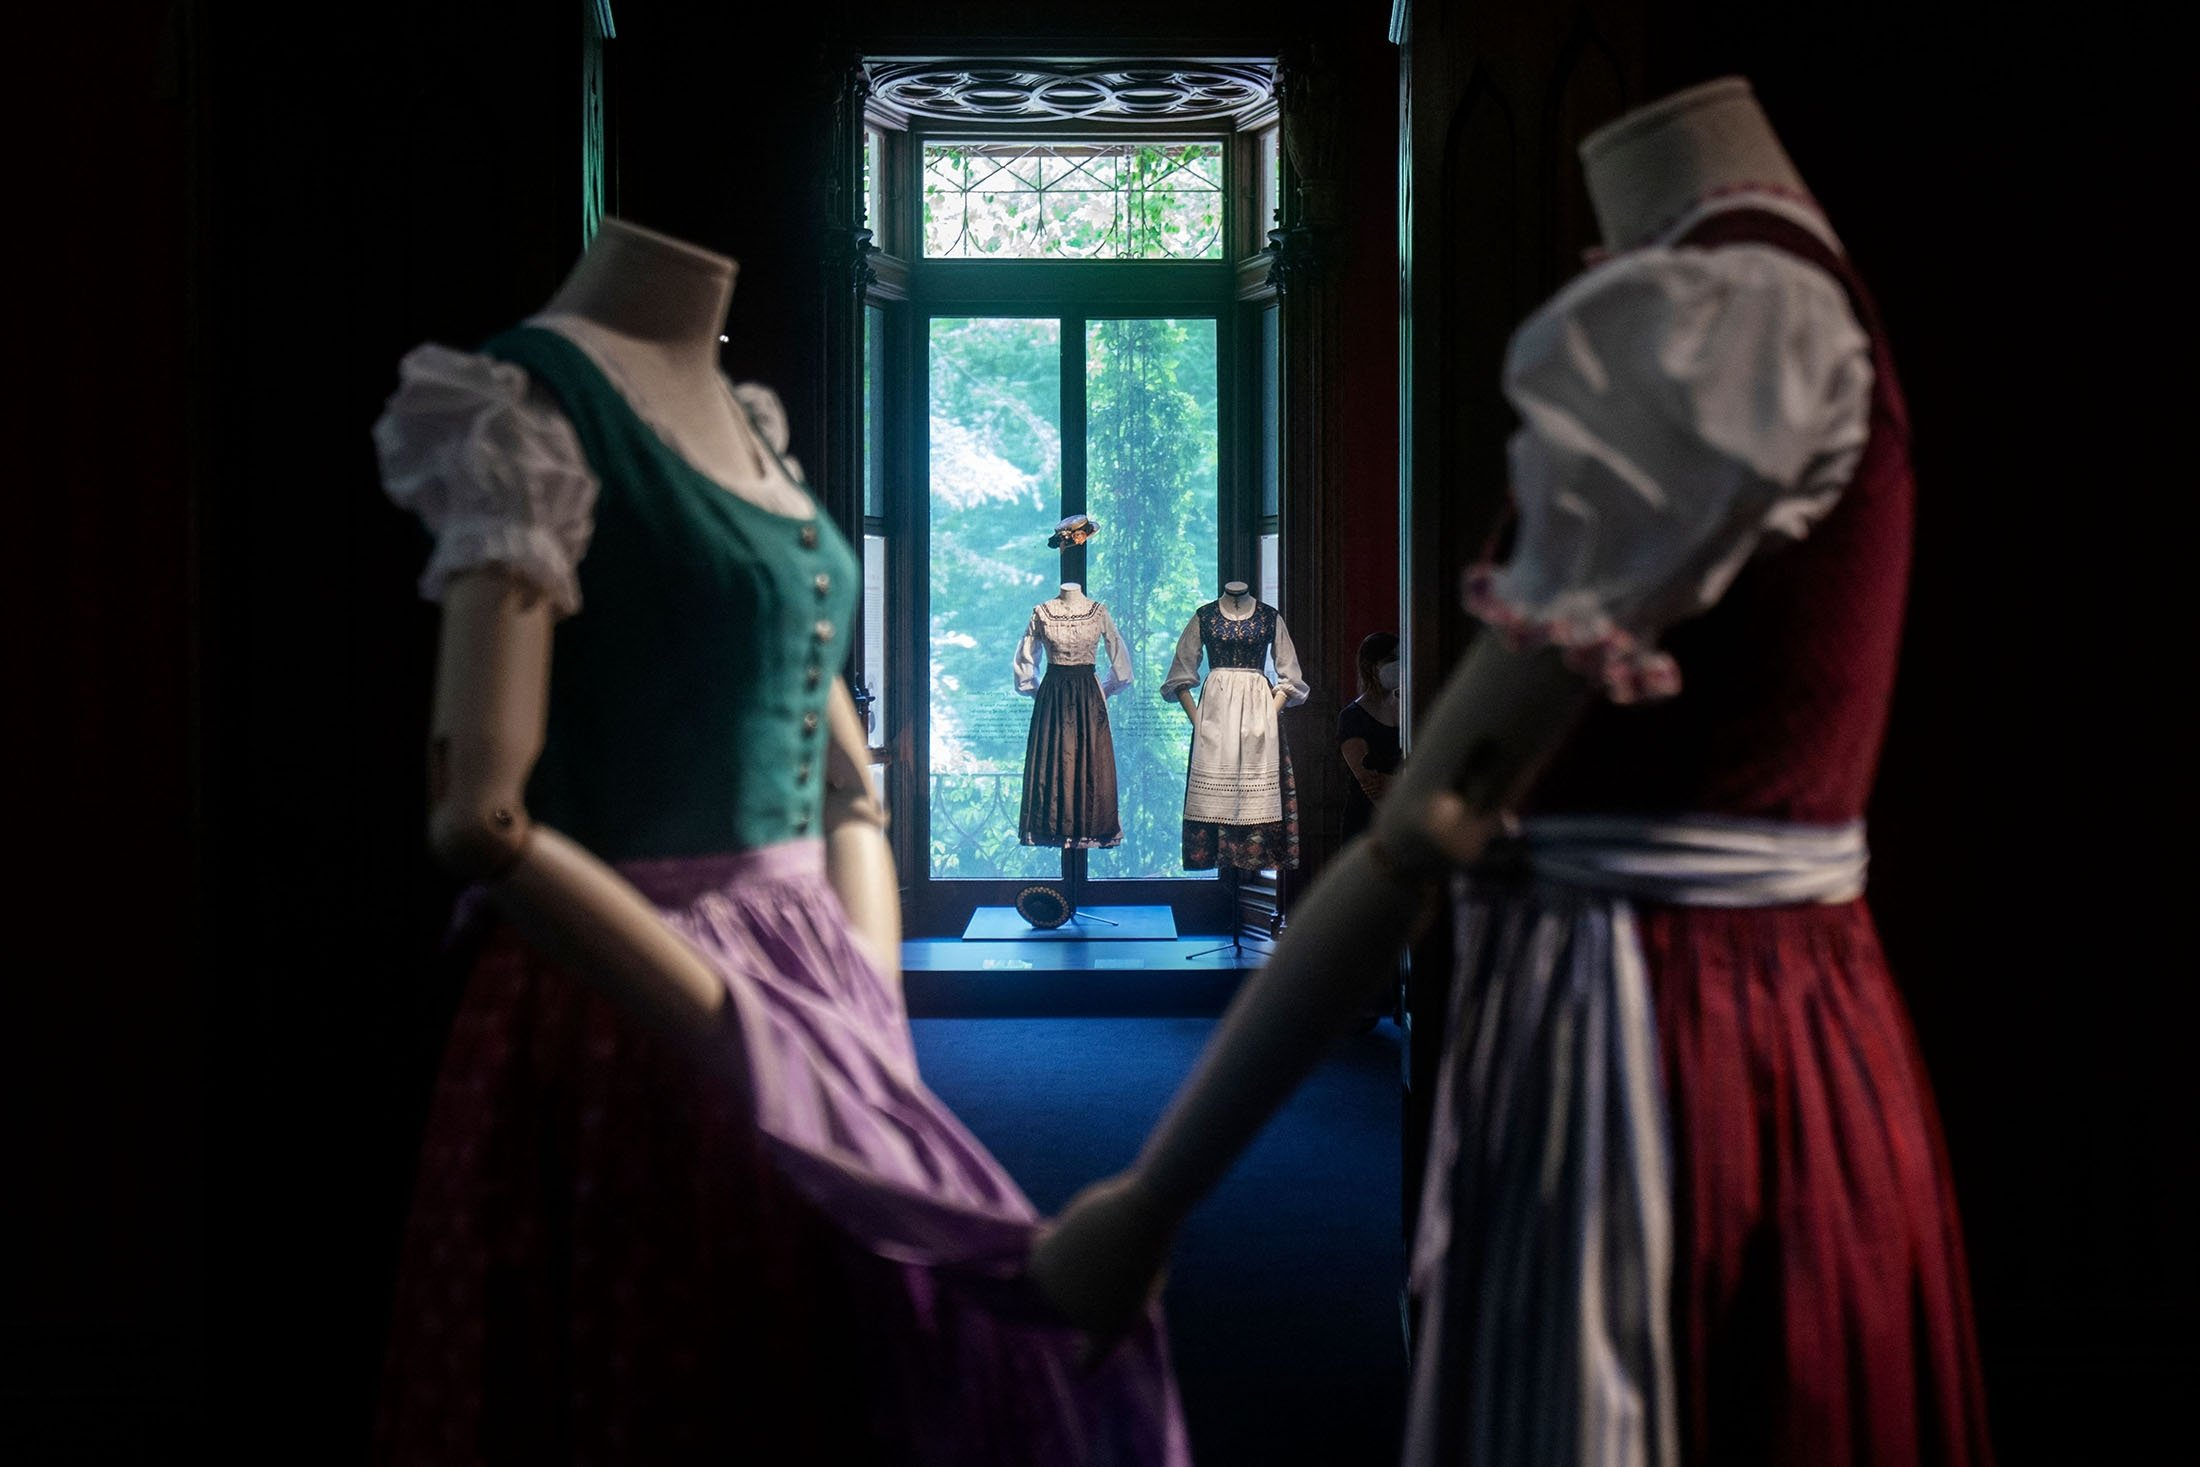 Dirndl dresses are on display at the exhibition 'Dirndl – Tradition goes fashion' at the Mamorschloessl palace in Bad Ischl, Upper Austria, June 24, 2021. (AFP Photo)